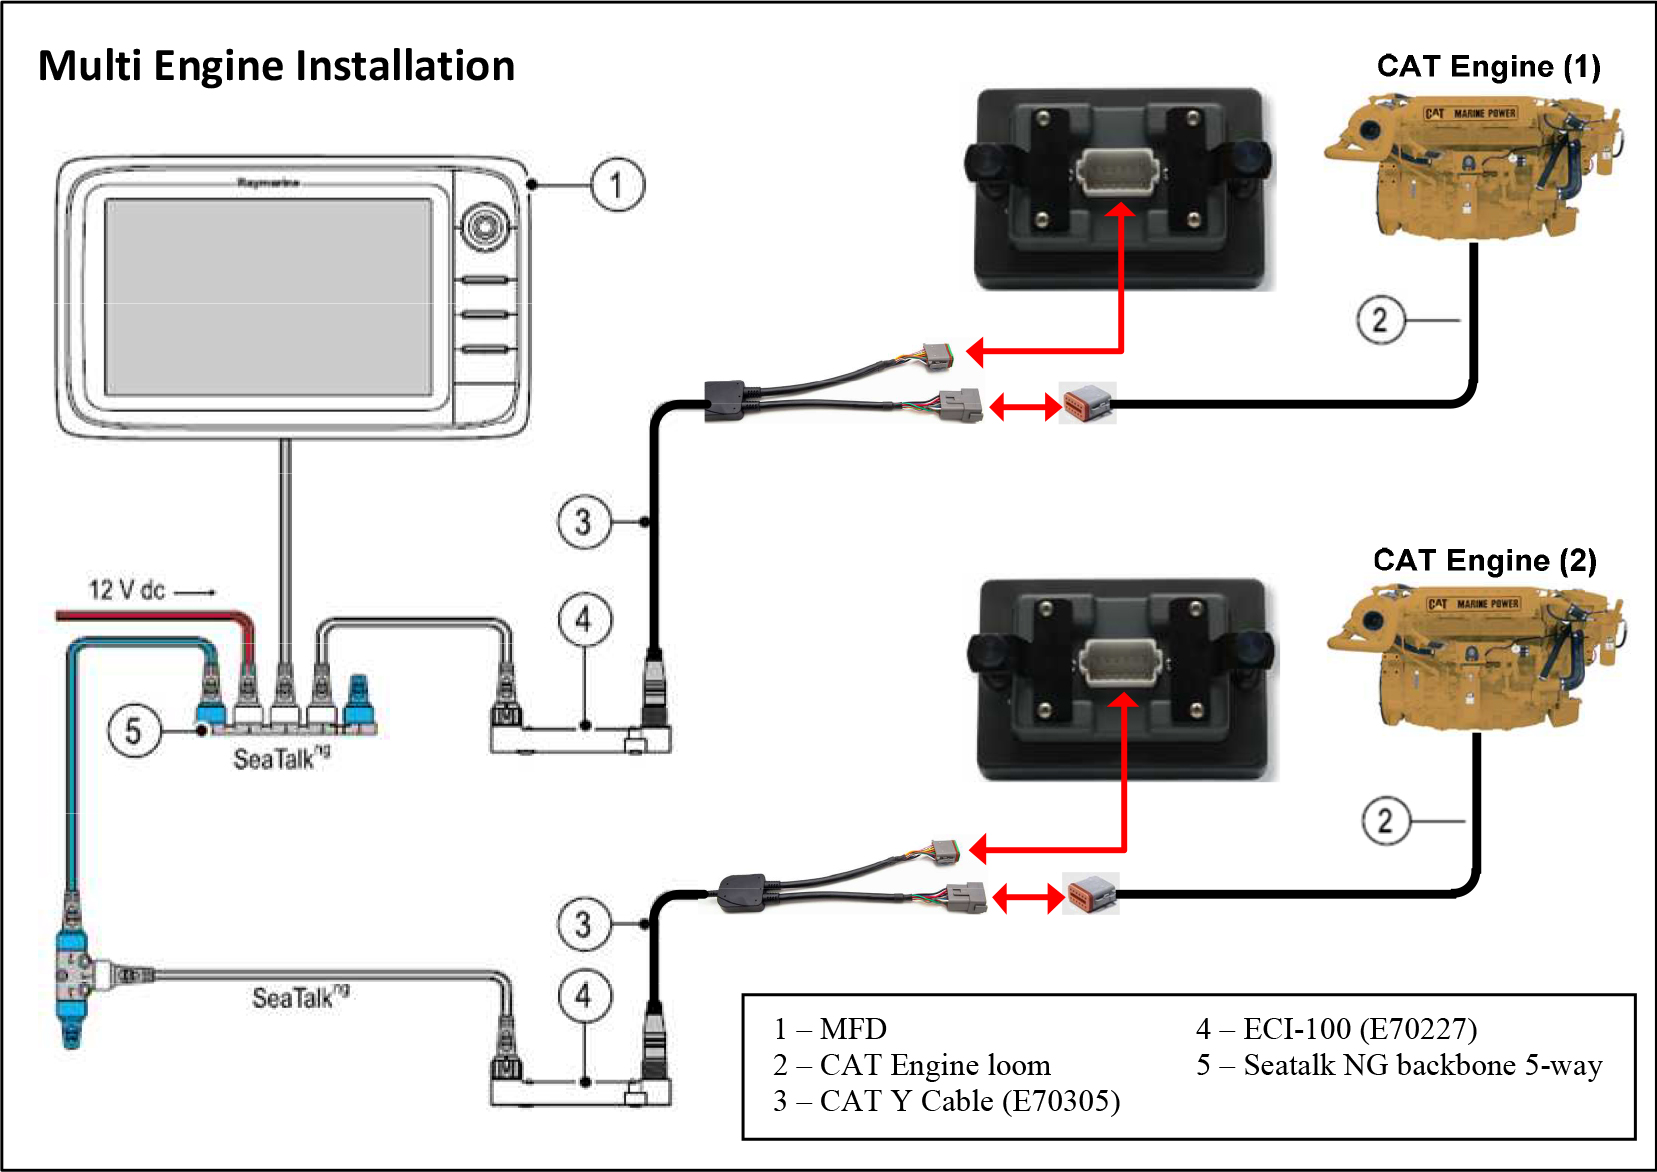 Eci 100 Engine Interfacing Simple Ev Wiring Schematics Caterpiller Multi Installation Raymarine